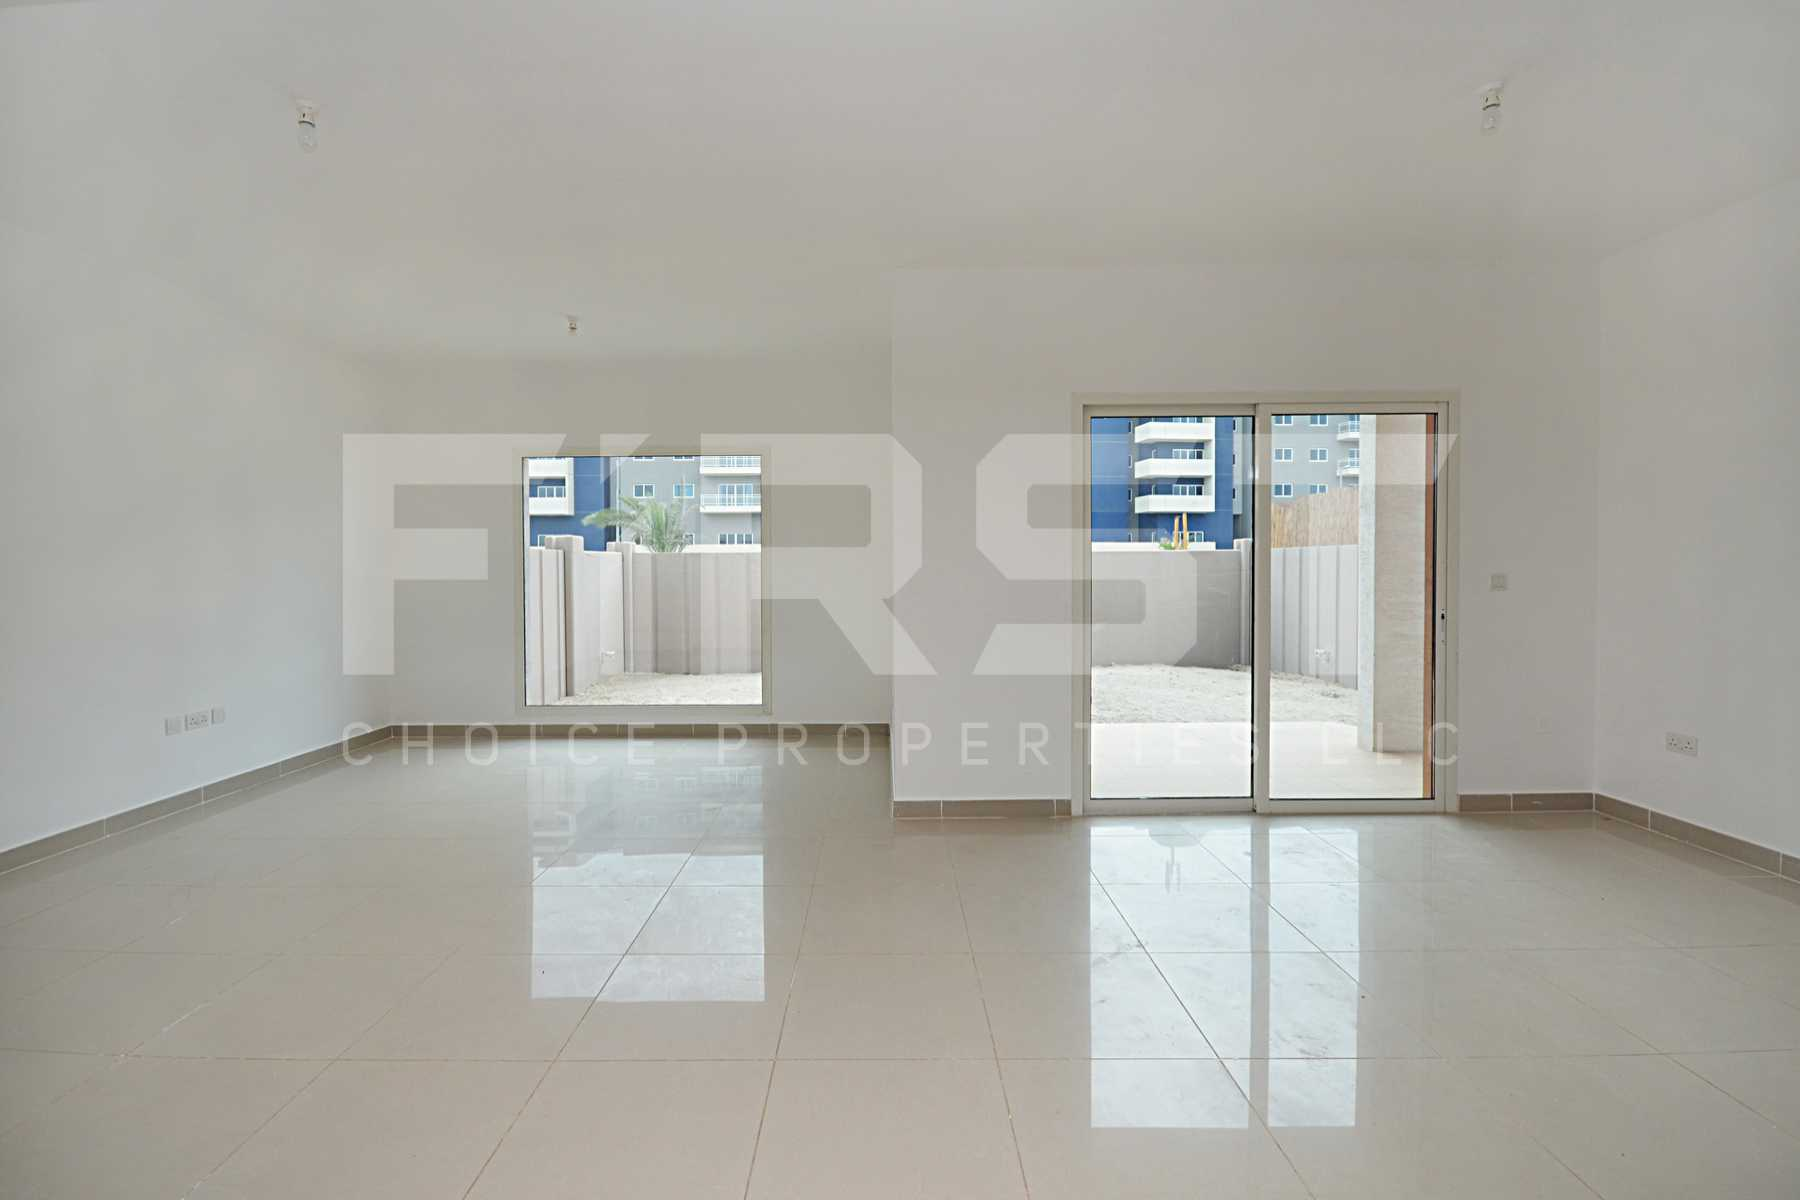 9. Internal Photo of 4 Bedroom Villa in Al Reef Villas Al Reef Abu Dhabi UAE 265.5 sq.m 2858 sq.ft (11).jpg